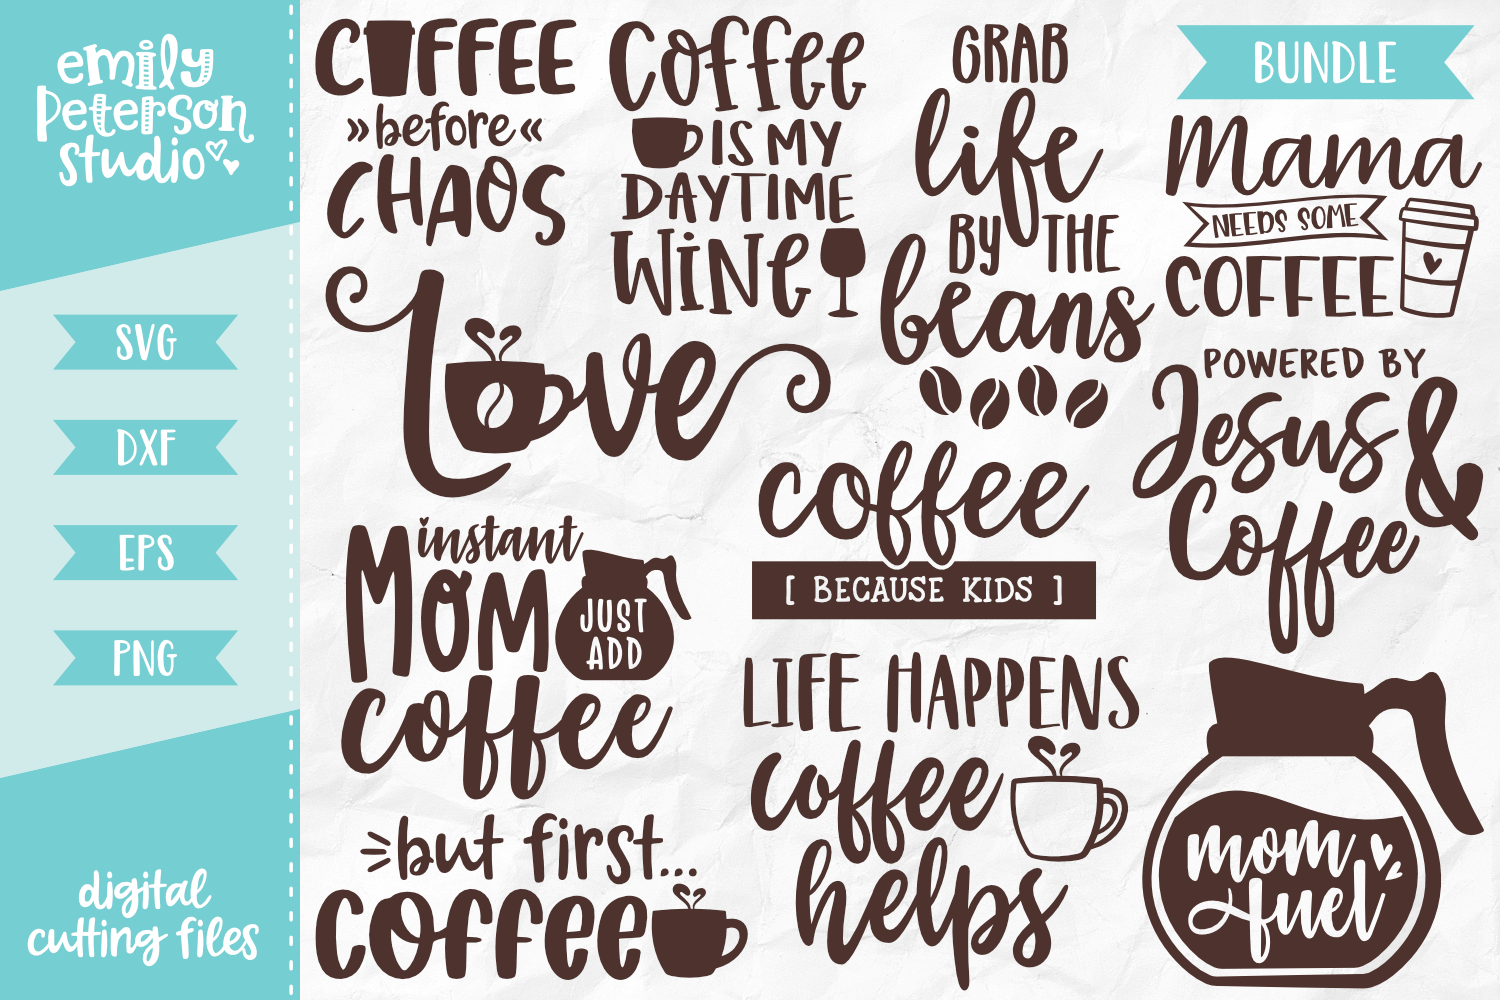 Coffee Lover Bundle 11 Designs Svg Dxf By Emily Peterson Studio